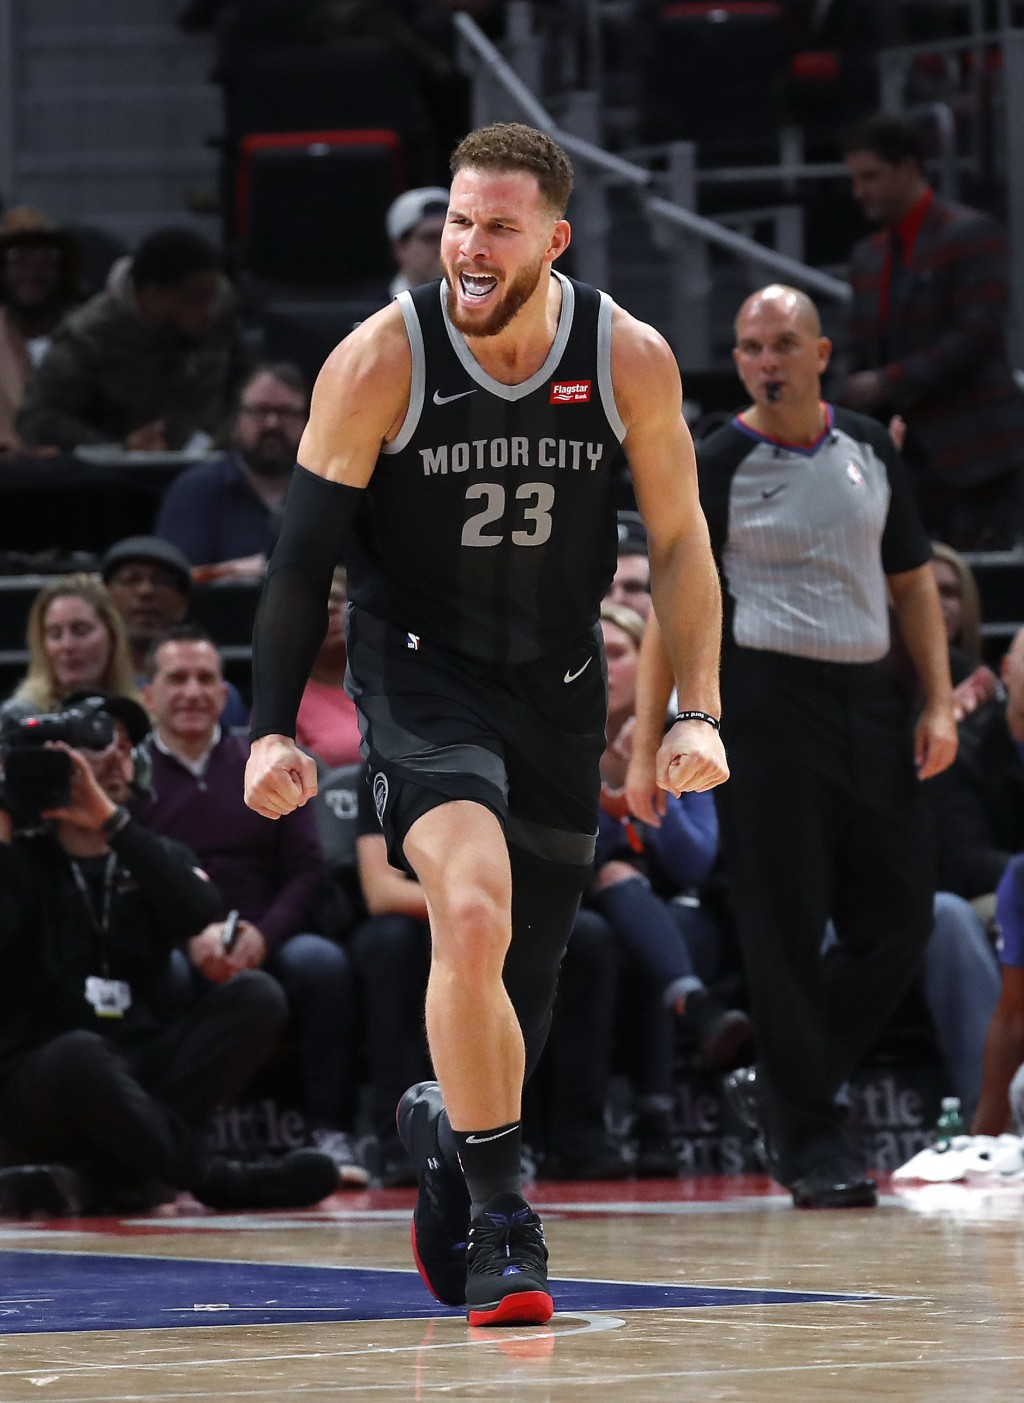 Detroit Pistons forward Blake Griffin reacts after hitting a basket against the Chicago Bulls in the first half of an NBA basketball game in Detroit,